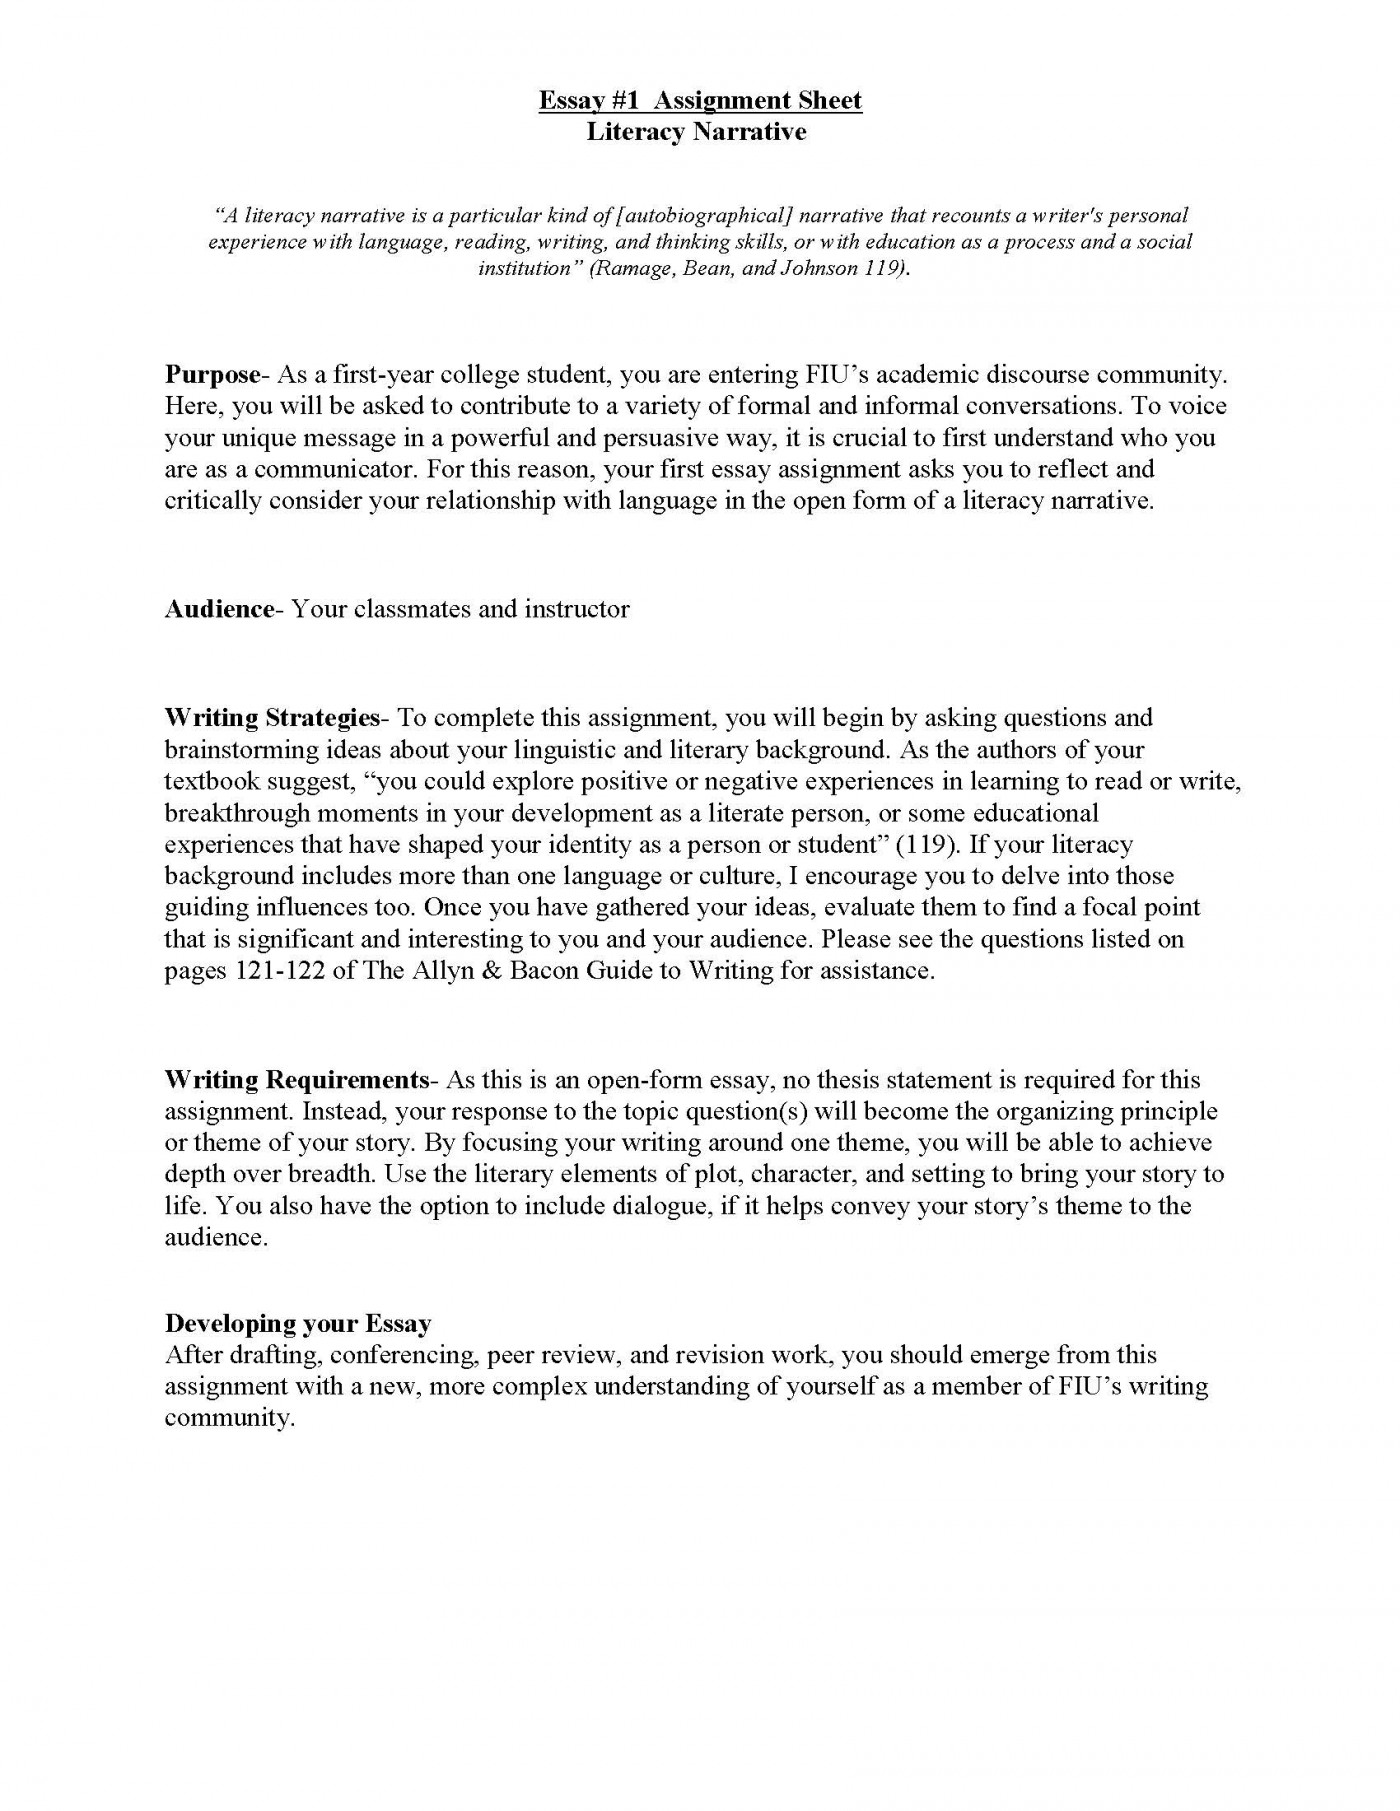 017 Literacy Narrative Unit Assignment Spring 2012 Page 1s Of Essays Essay Rare Examples Personal For High School Example About Experience Pdf Composition Topics 1400